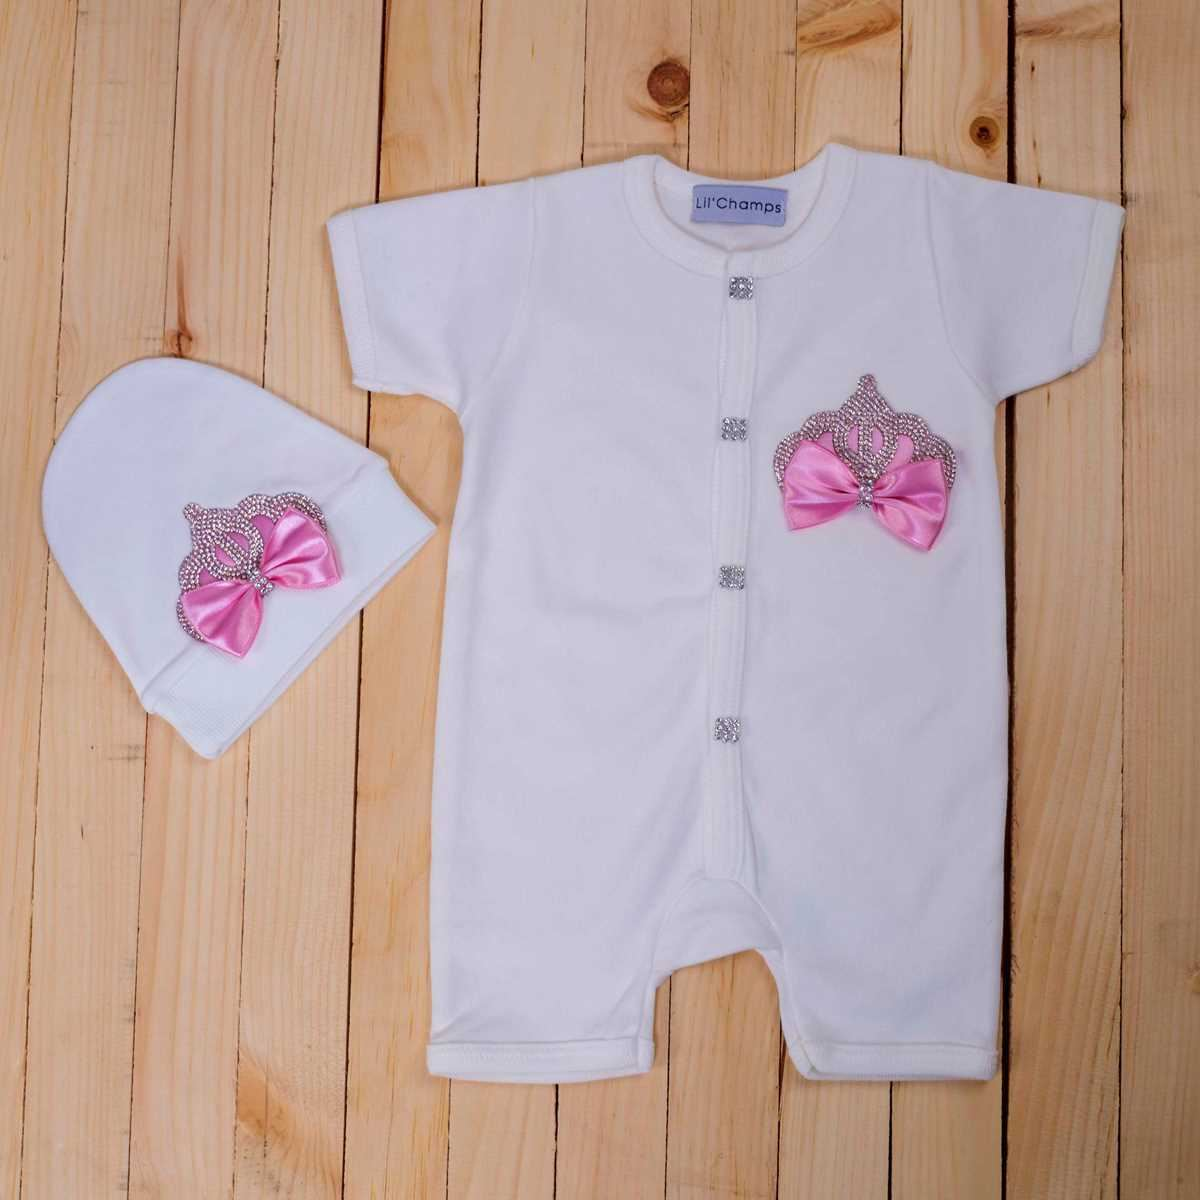 2 Pieces Romper set for Baby Girls-Summer Collection-Lilchamps